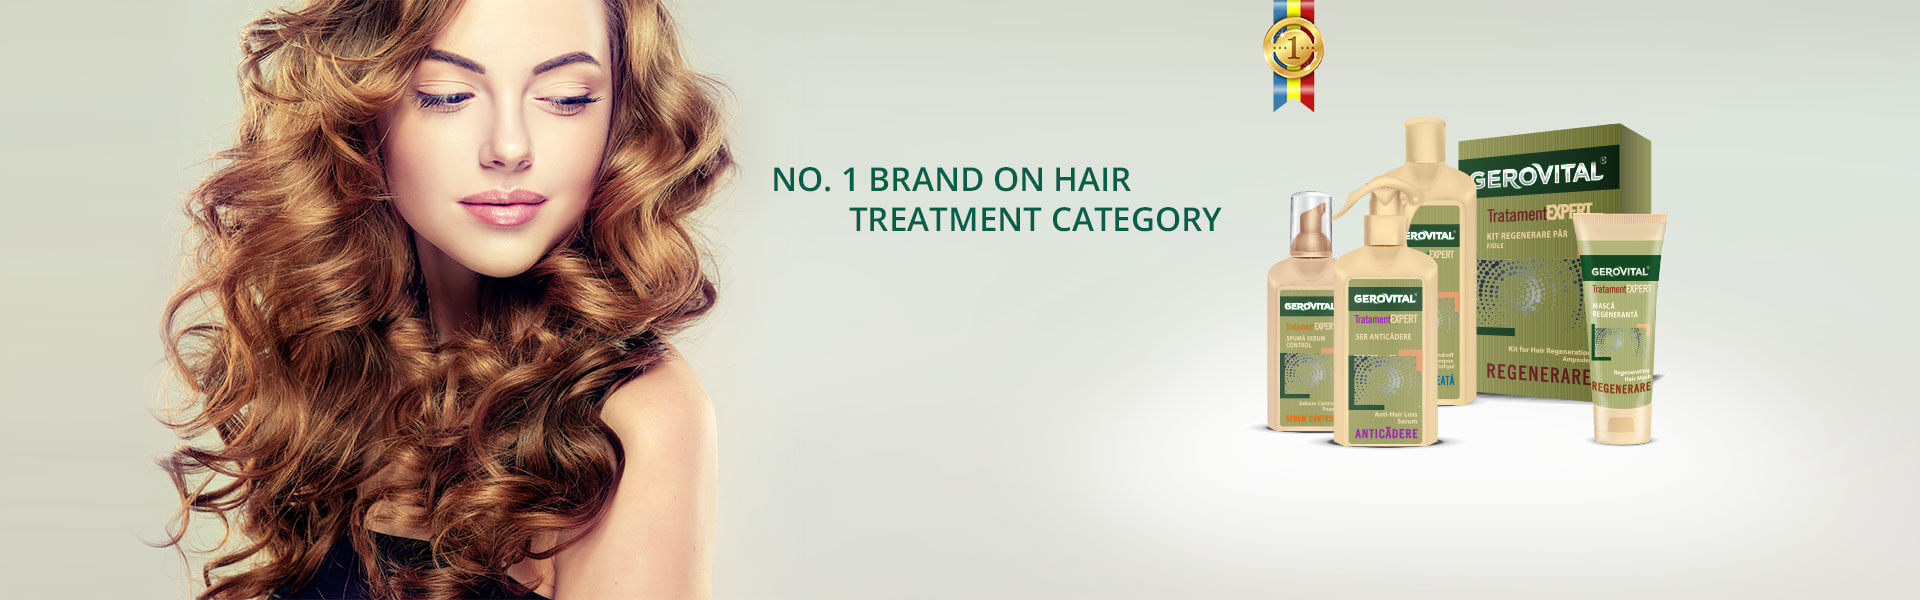 Romanian's no.1 brand on hair treatment